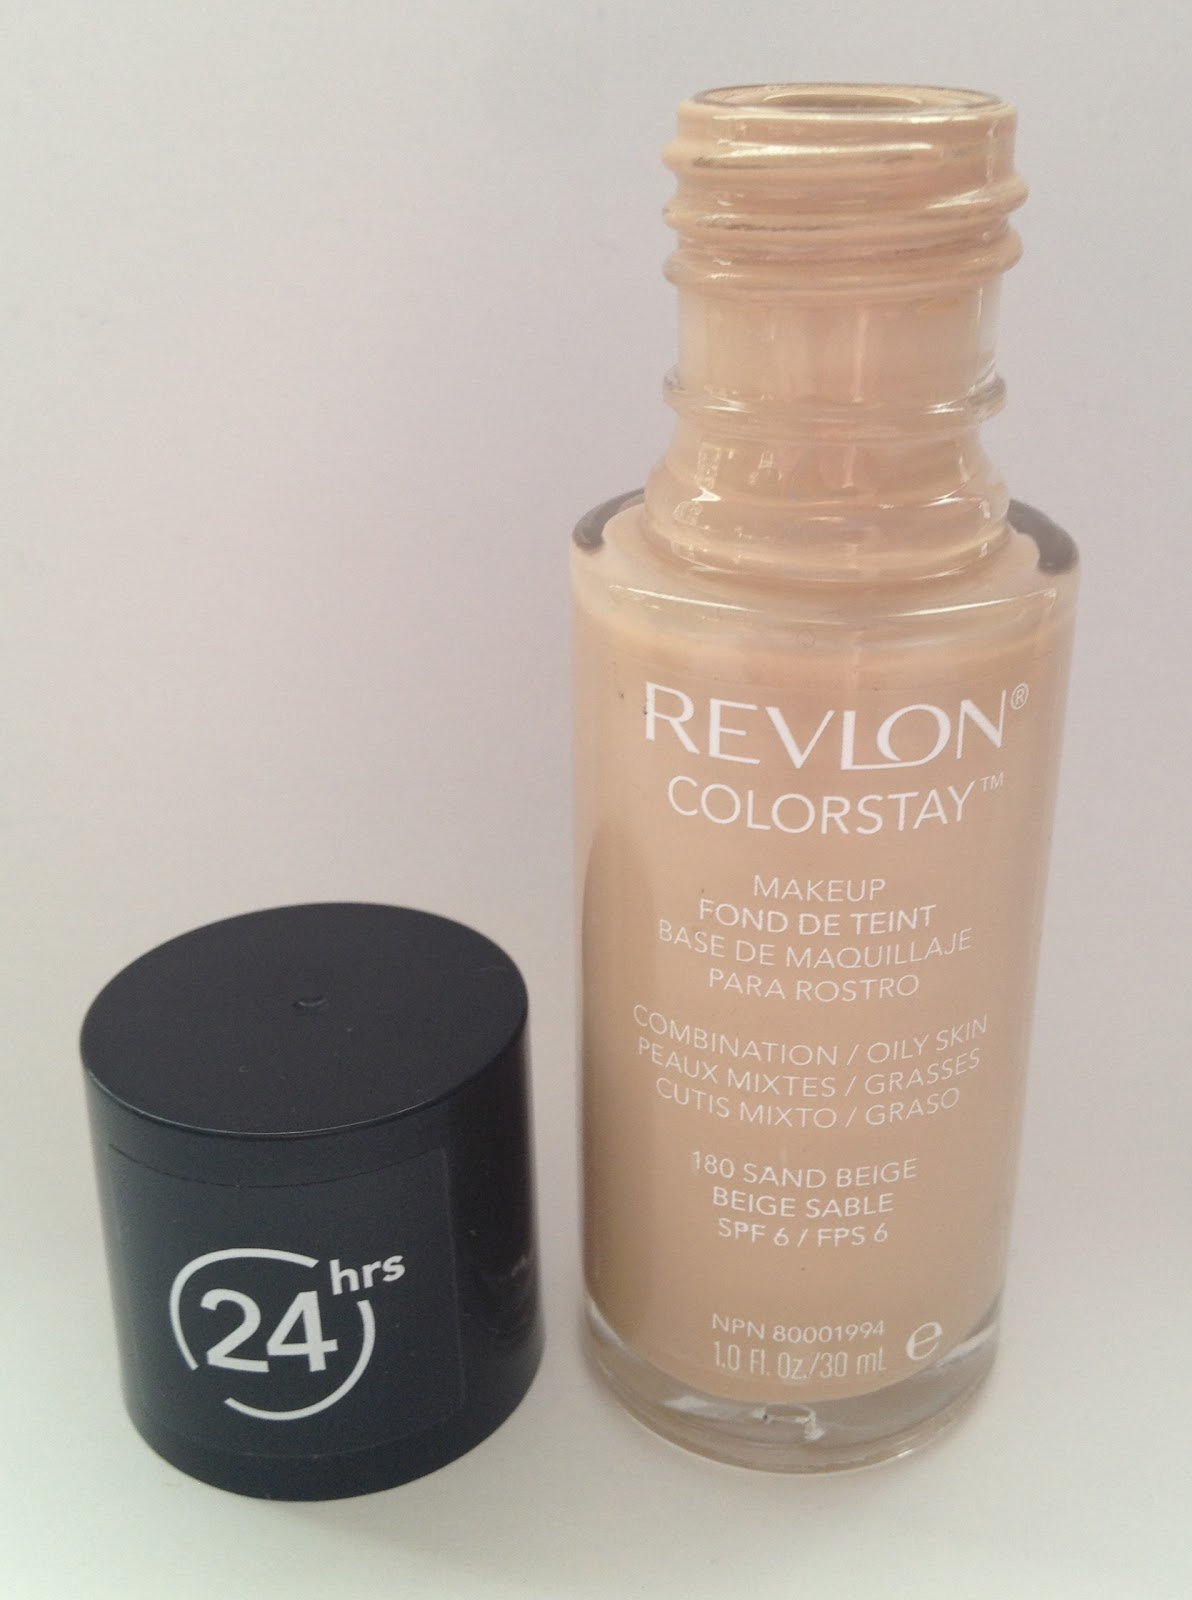 Revlon Colorstay Foundation For Combination Oily Skin Scolvinbeauty Foundations I Was Looking Online And Read A Lot Of People Liked The So Decided To Go With That Havent Regretted This Choice Yet